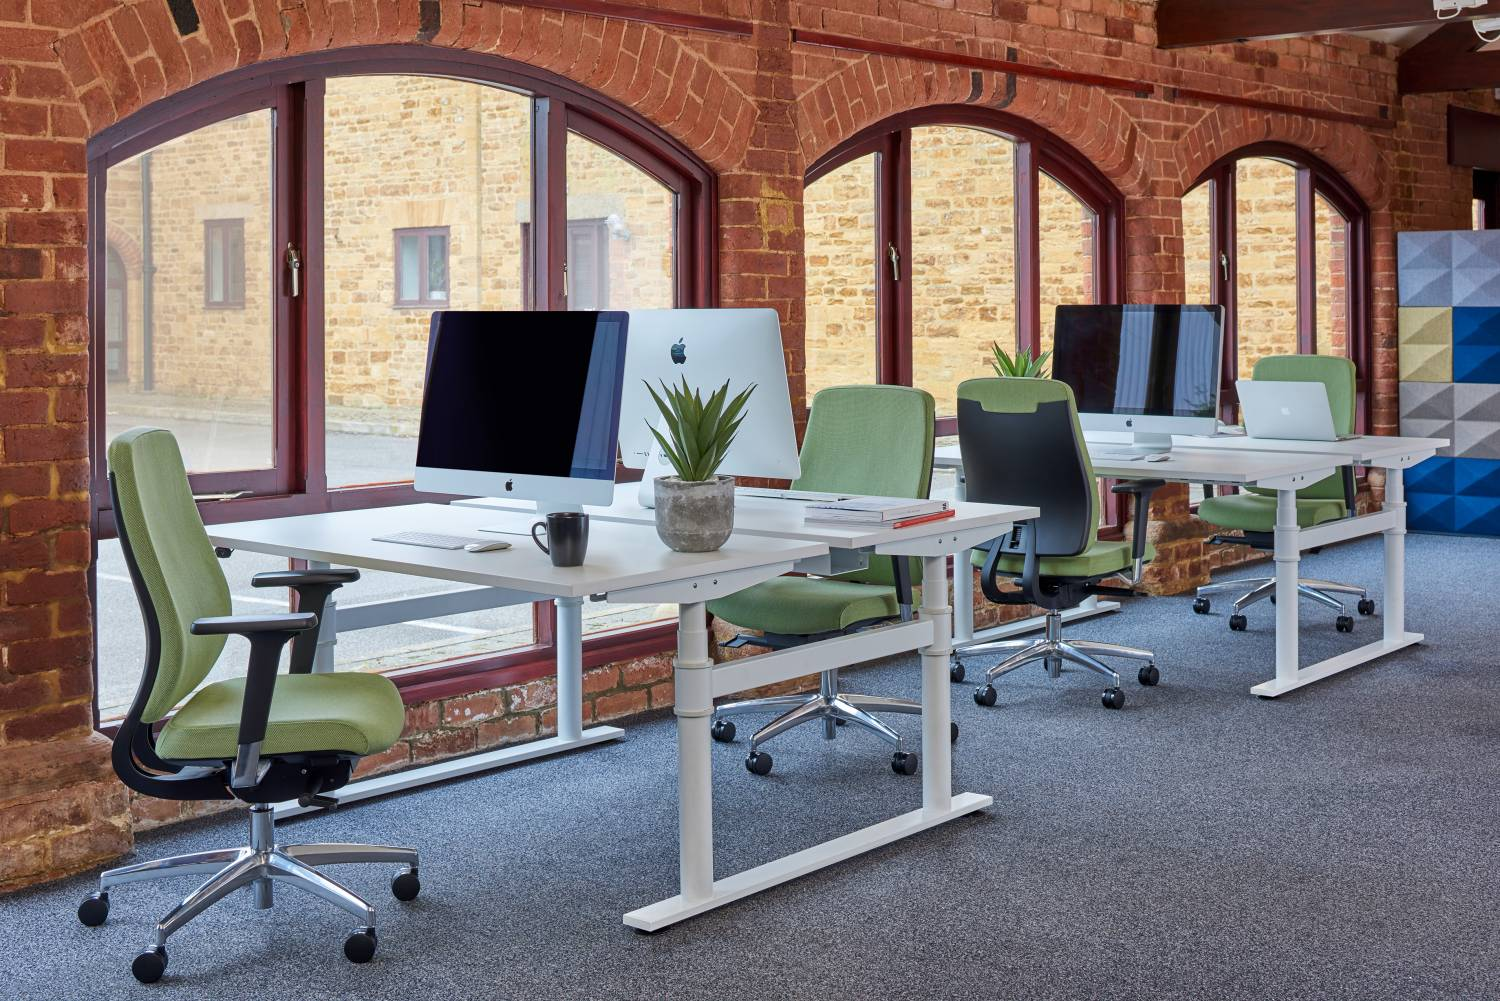 Green Task Chairs in Office